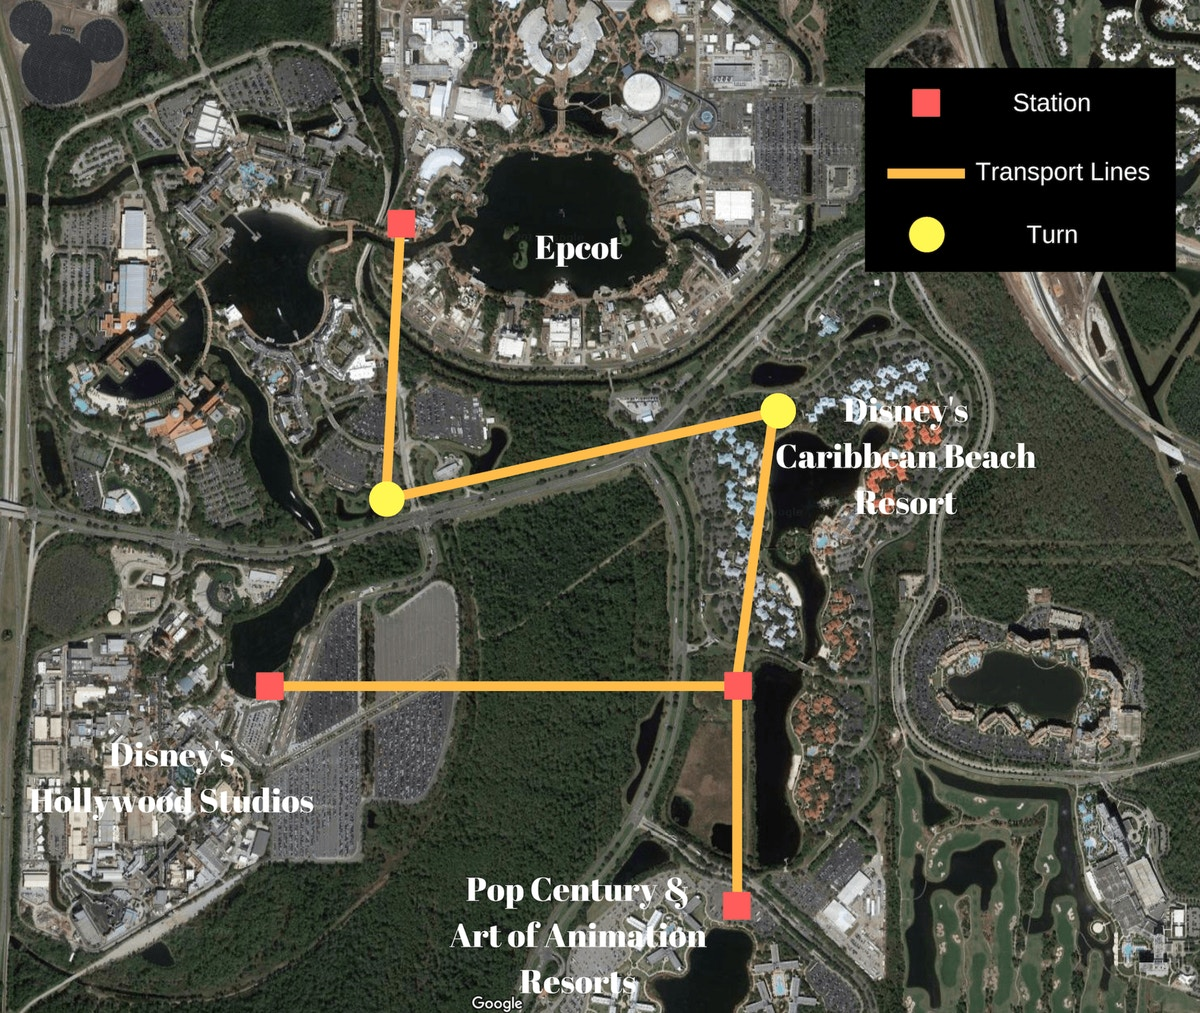 The rumored route, stops and turns of Walt Disney World's new Skyway system.